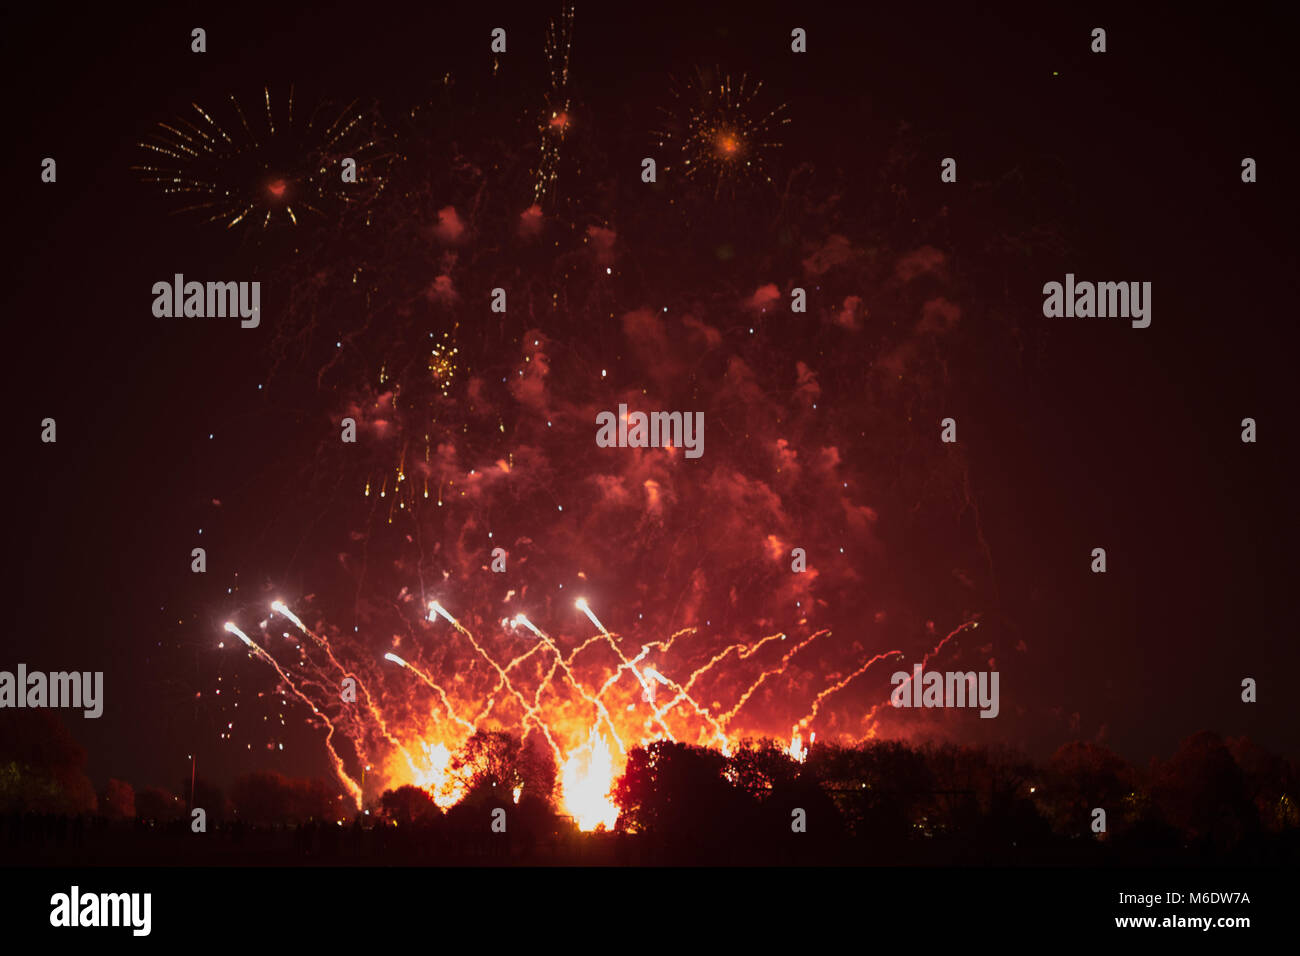 Fireworks at Wanstead Flats - Stock Image